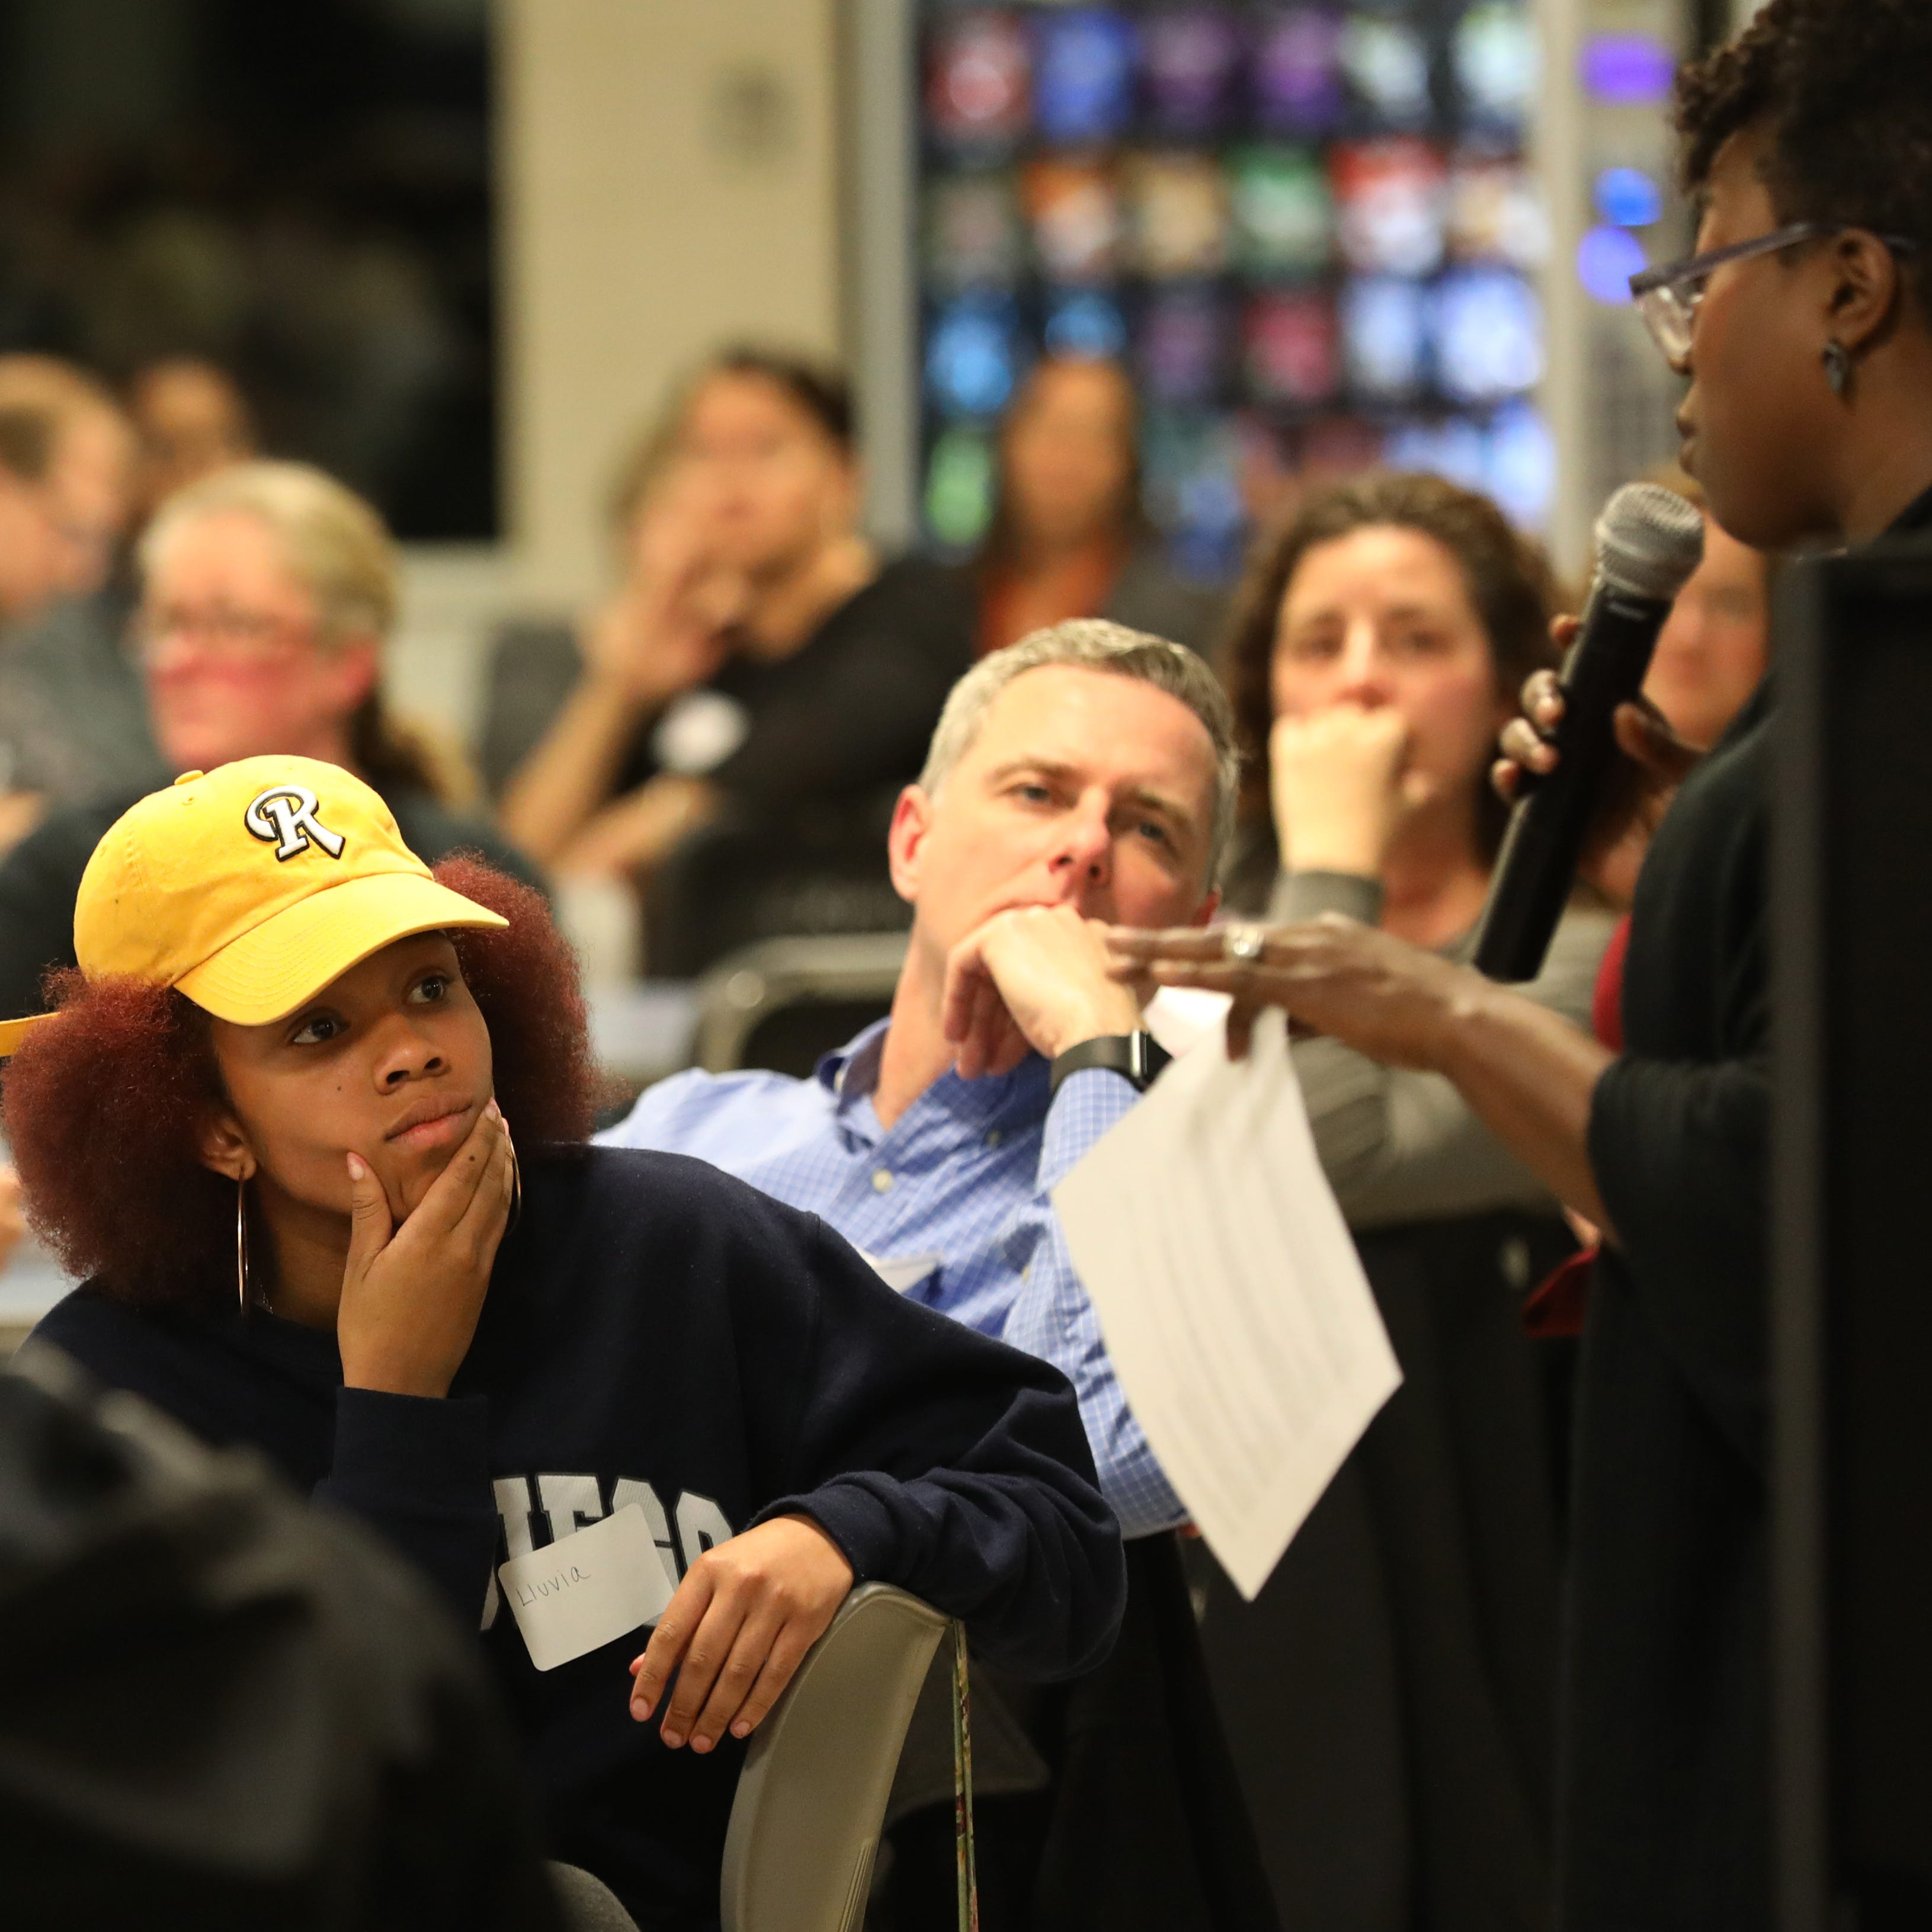 New racial incident reported at Pittsford school; litigation started against district